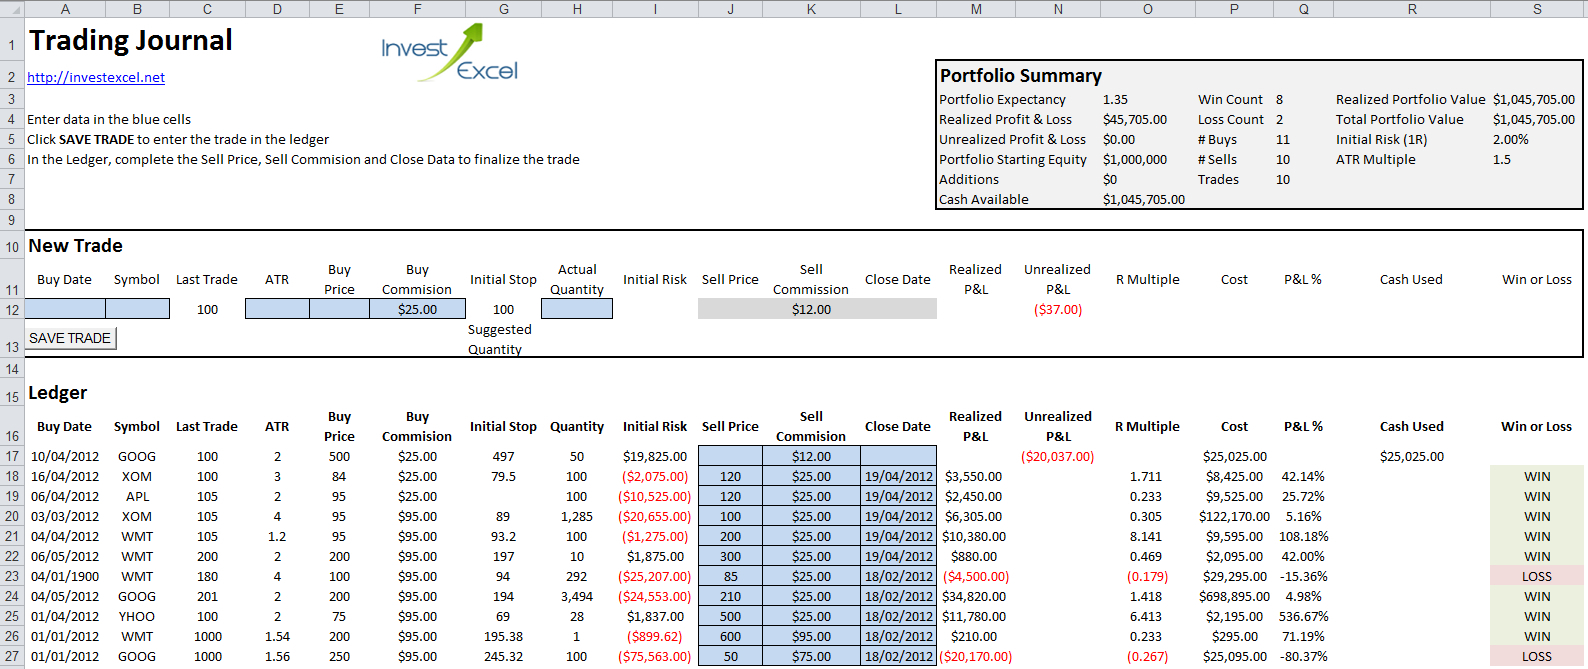 Stock Trading Spreadsheet Free Within Free Stock Trading Journal Spreadsheet Indian Stock Market Working Hours